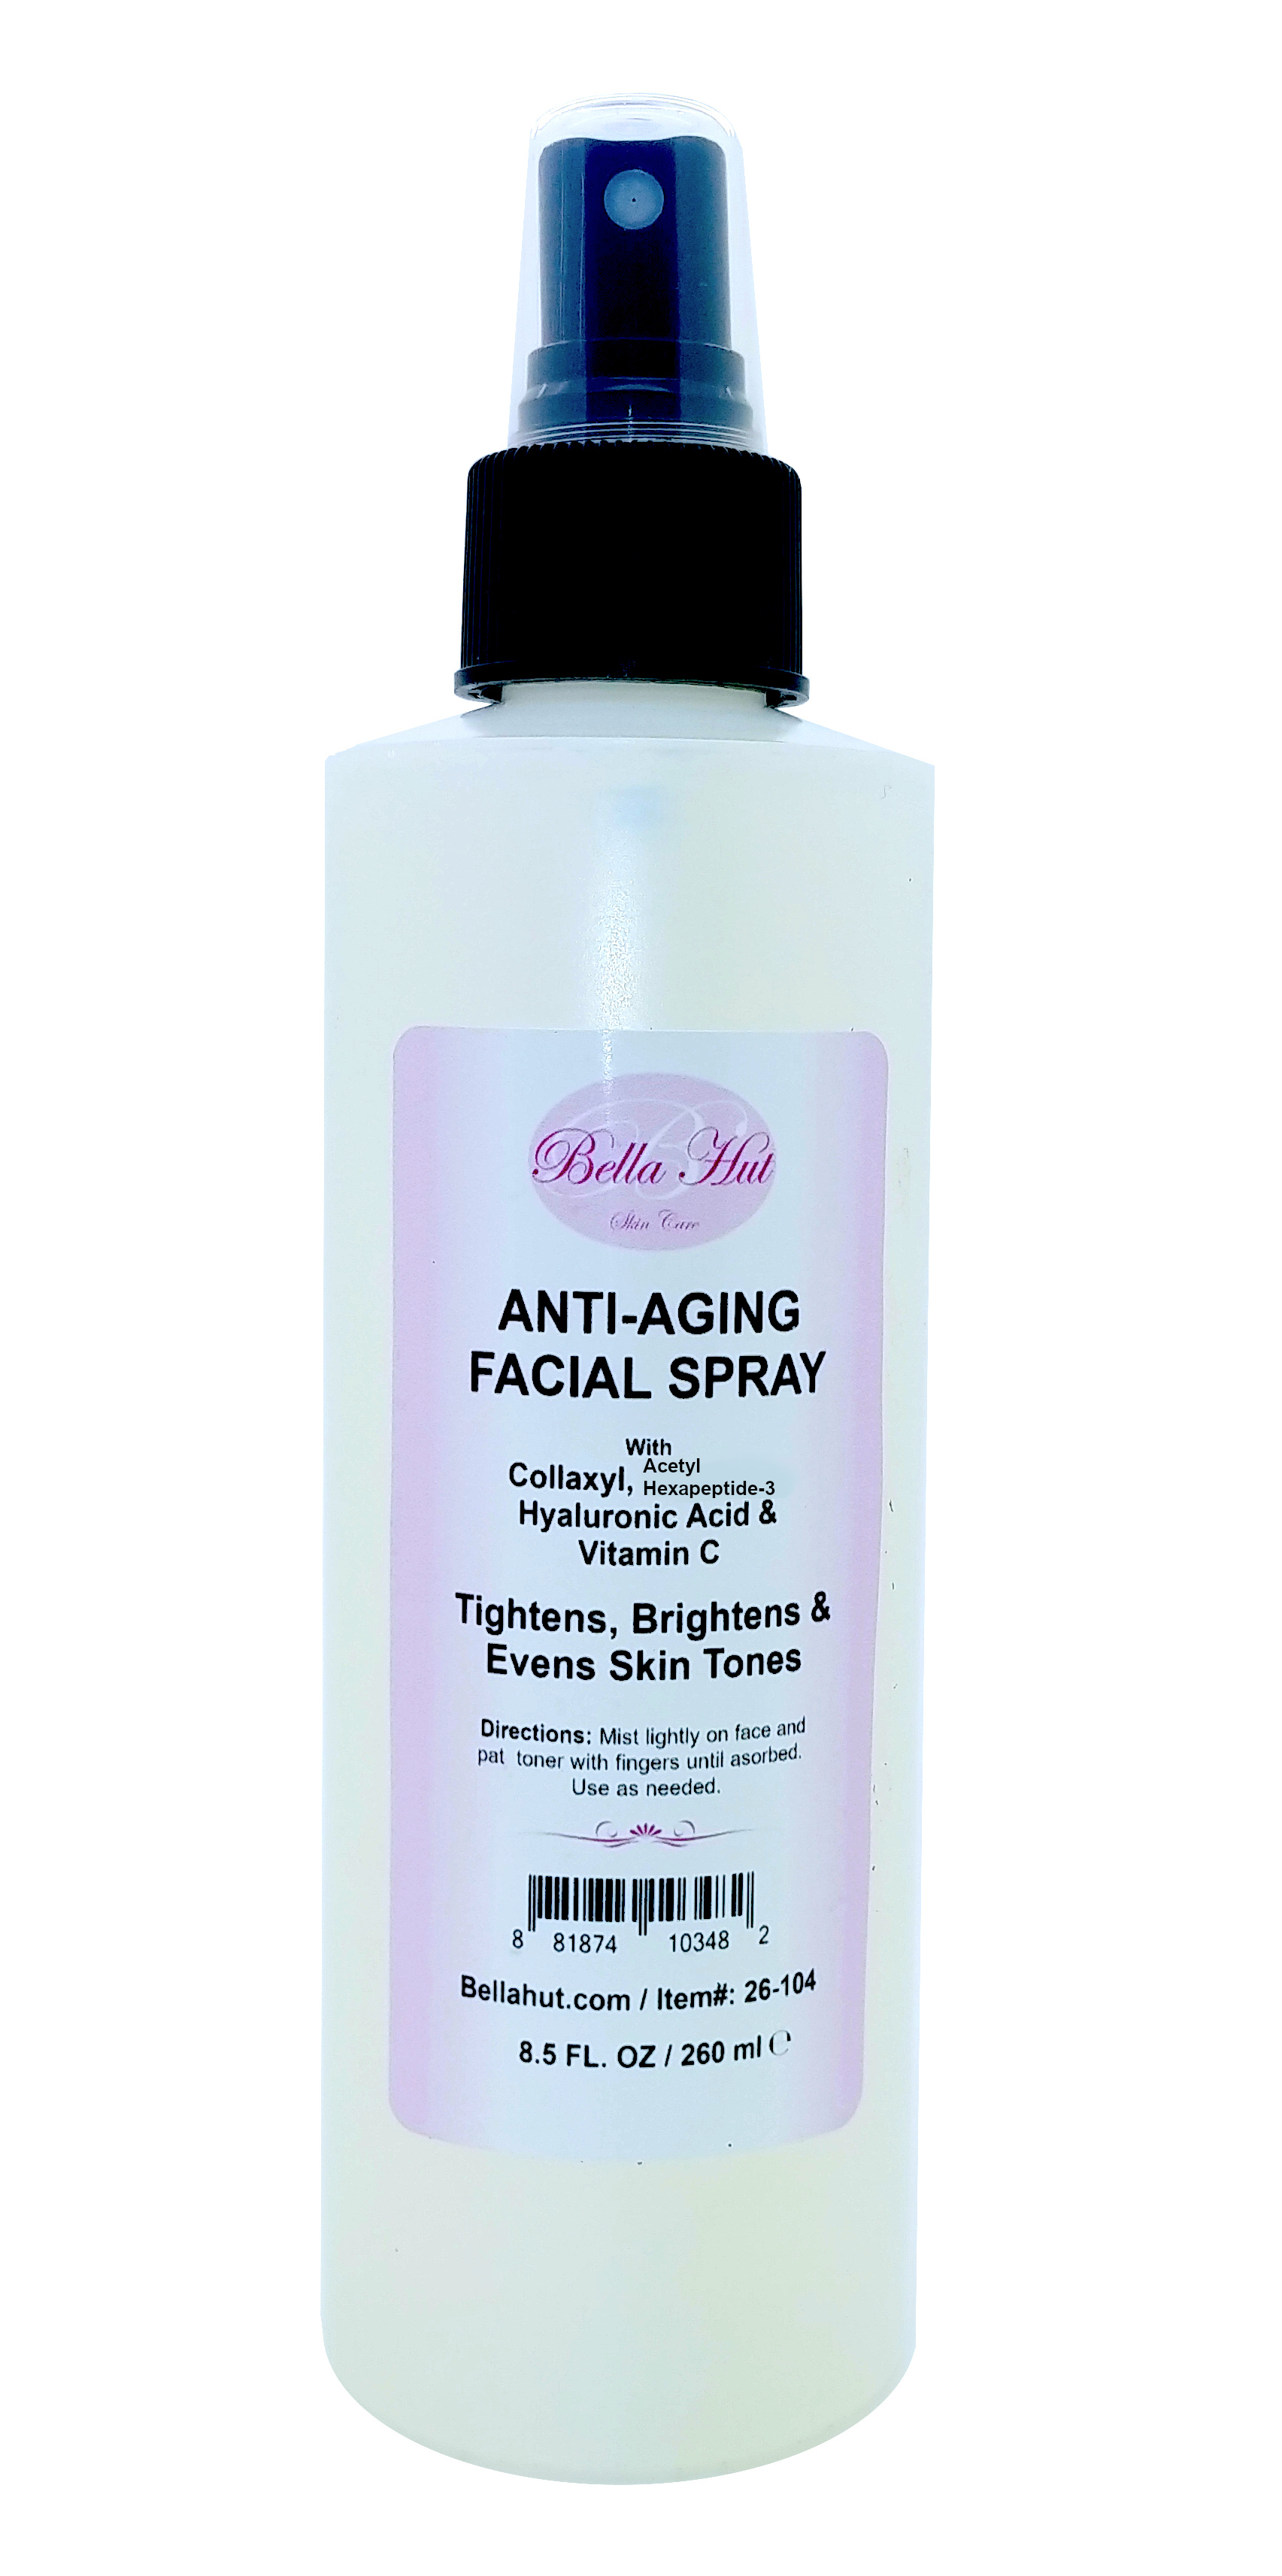 Anti Aging Facial Spray with Collaxyl Acetyl hexapeptide-3 Hyaluronic Acid and Vitamin C